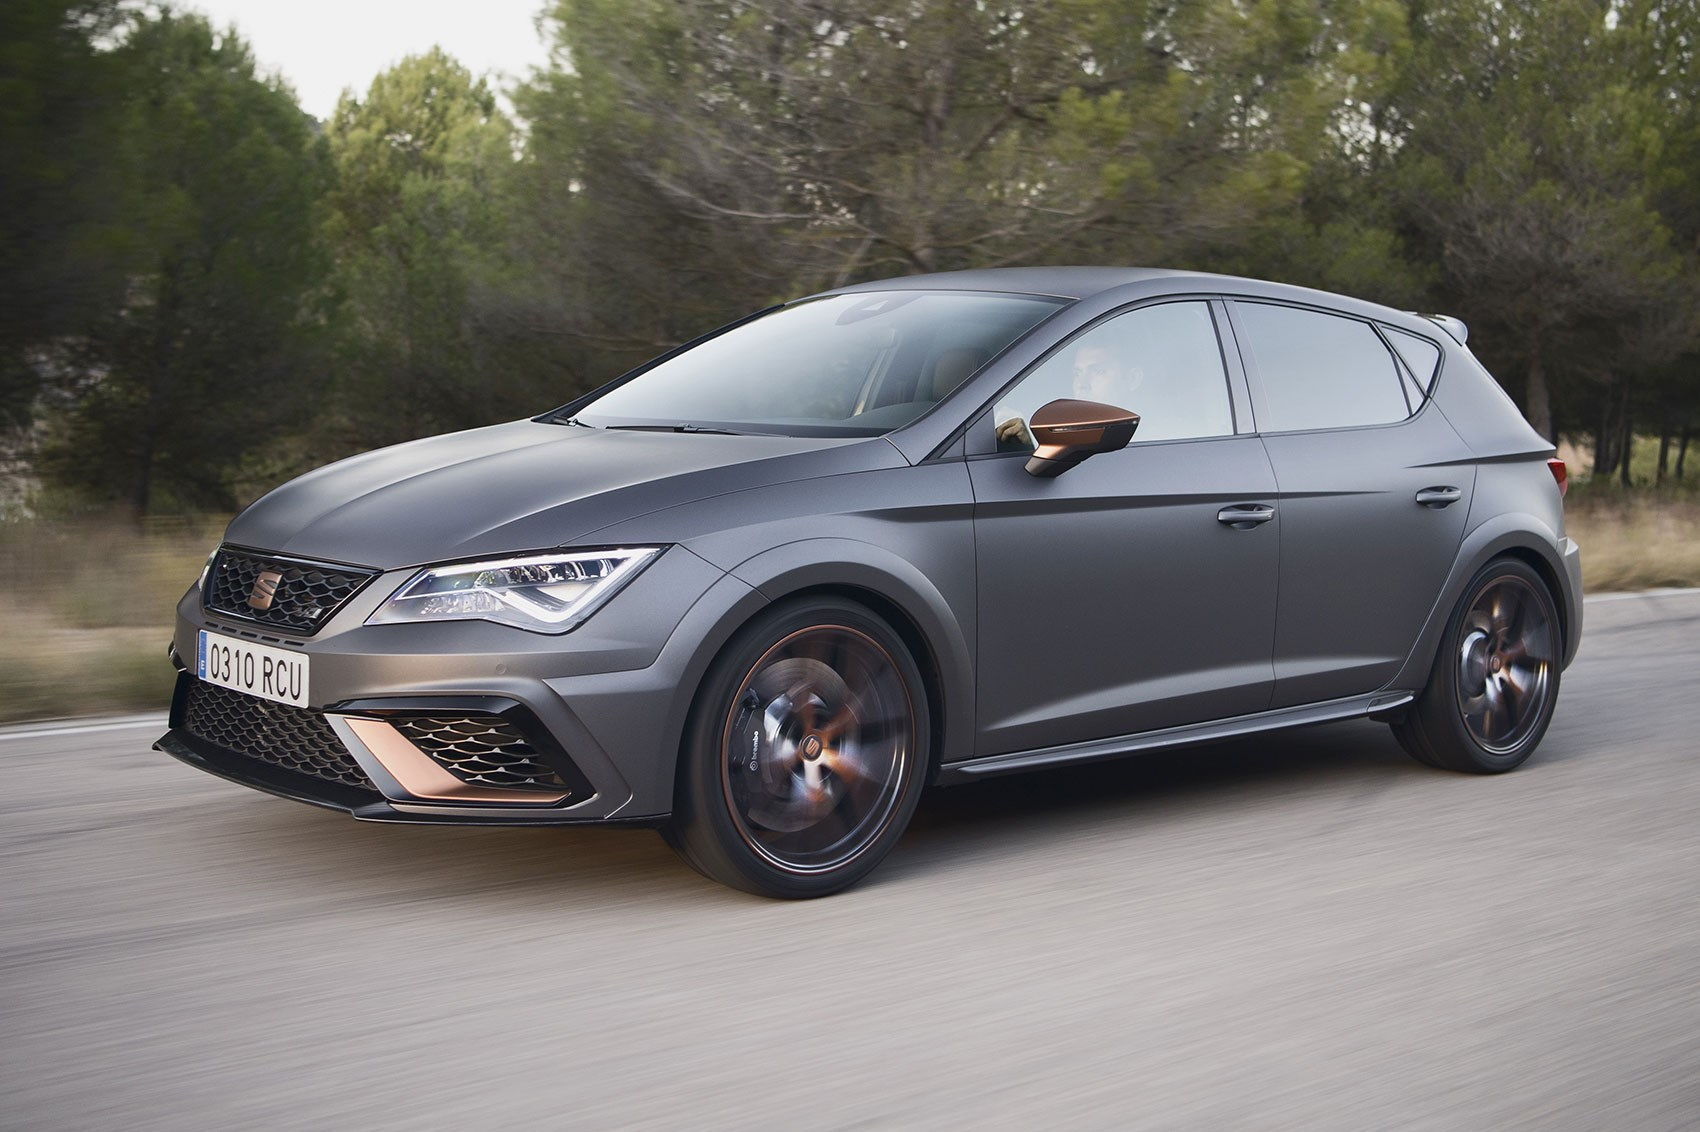 seat leon cupra r 2018 review car magazine. Black Bedroom Furniture Sets. Home Design Ideas